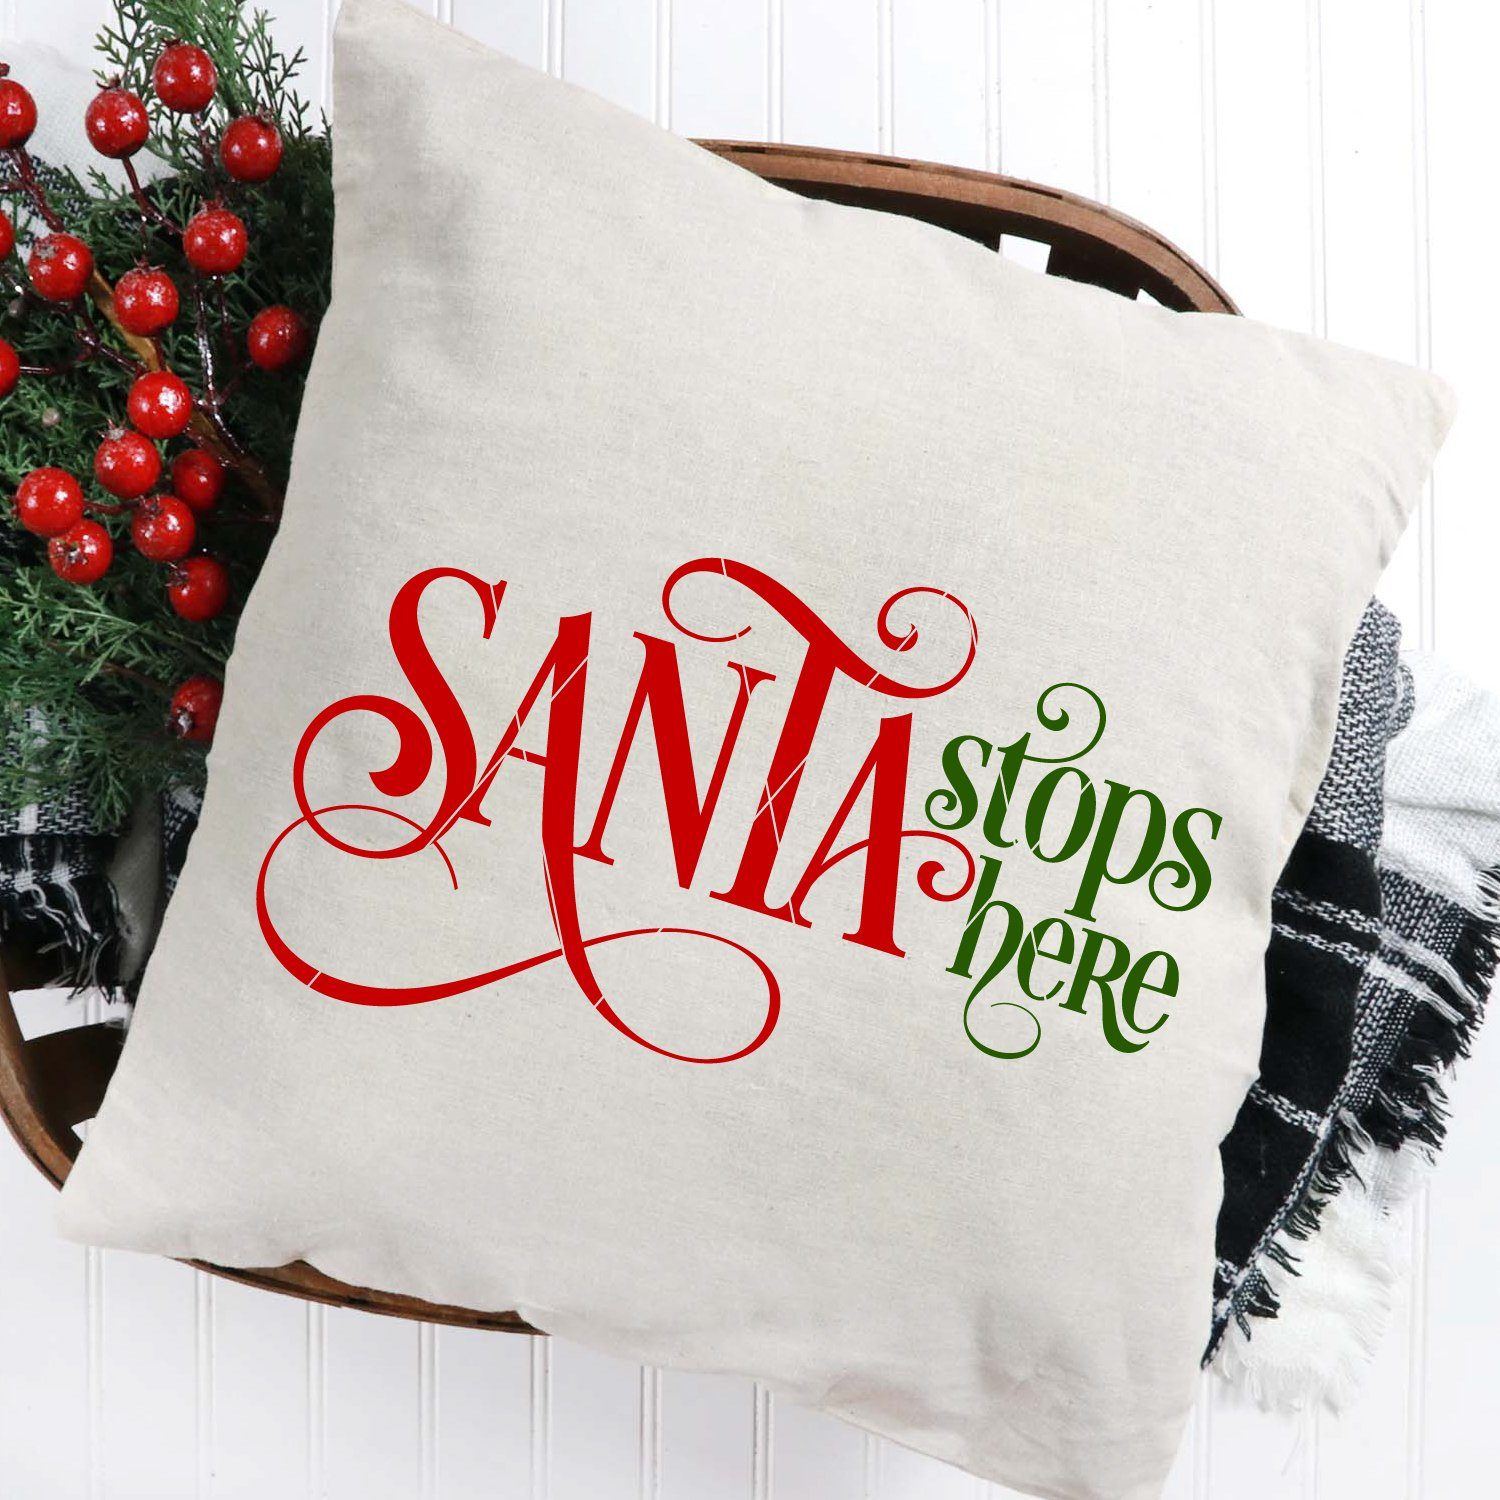 Santa Stops Here SVG File for Christmas - Commercial Use SVG Files